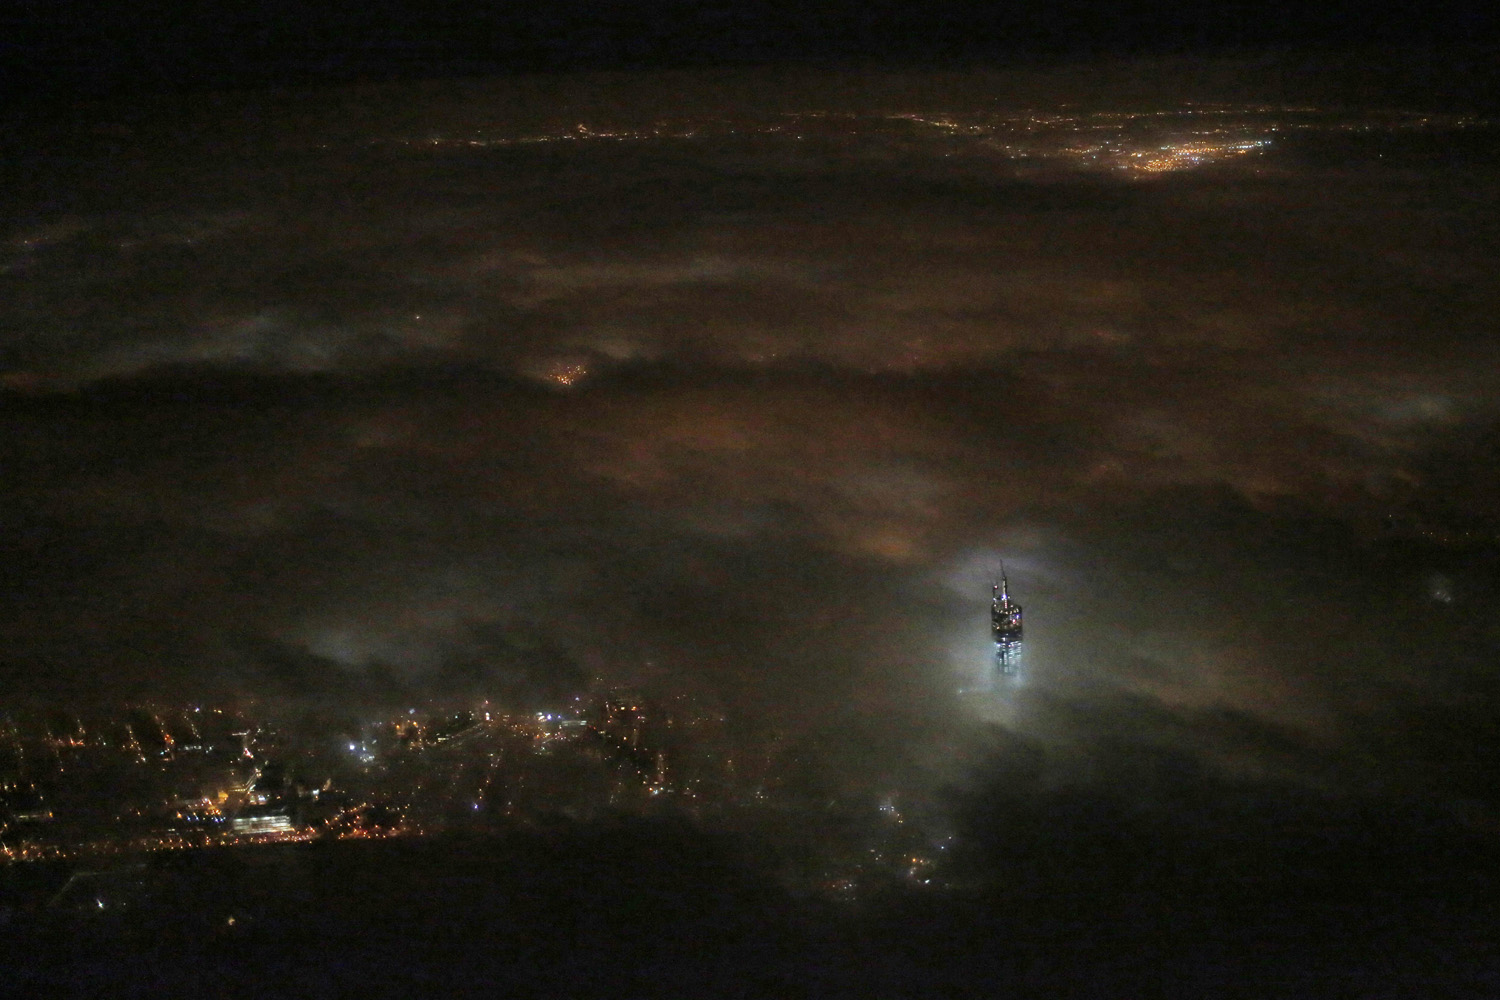 March 12, 2013. One World Trade Center emerges from the clouds in the night sky in a photo made from a passing airplane in New York.